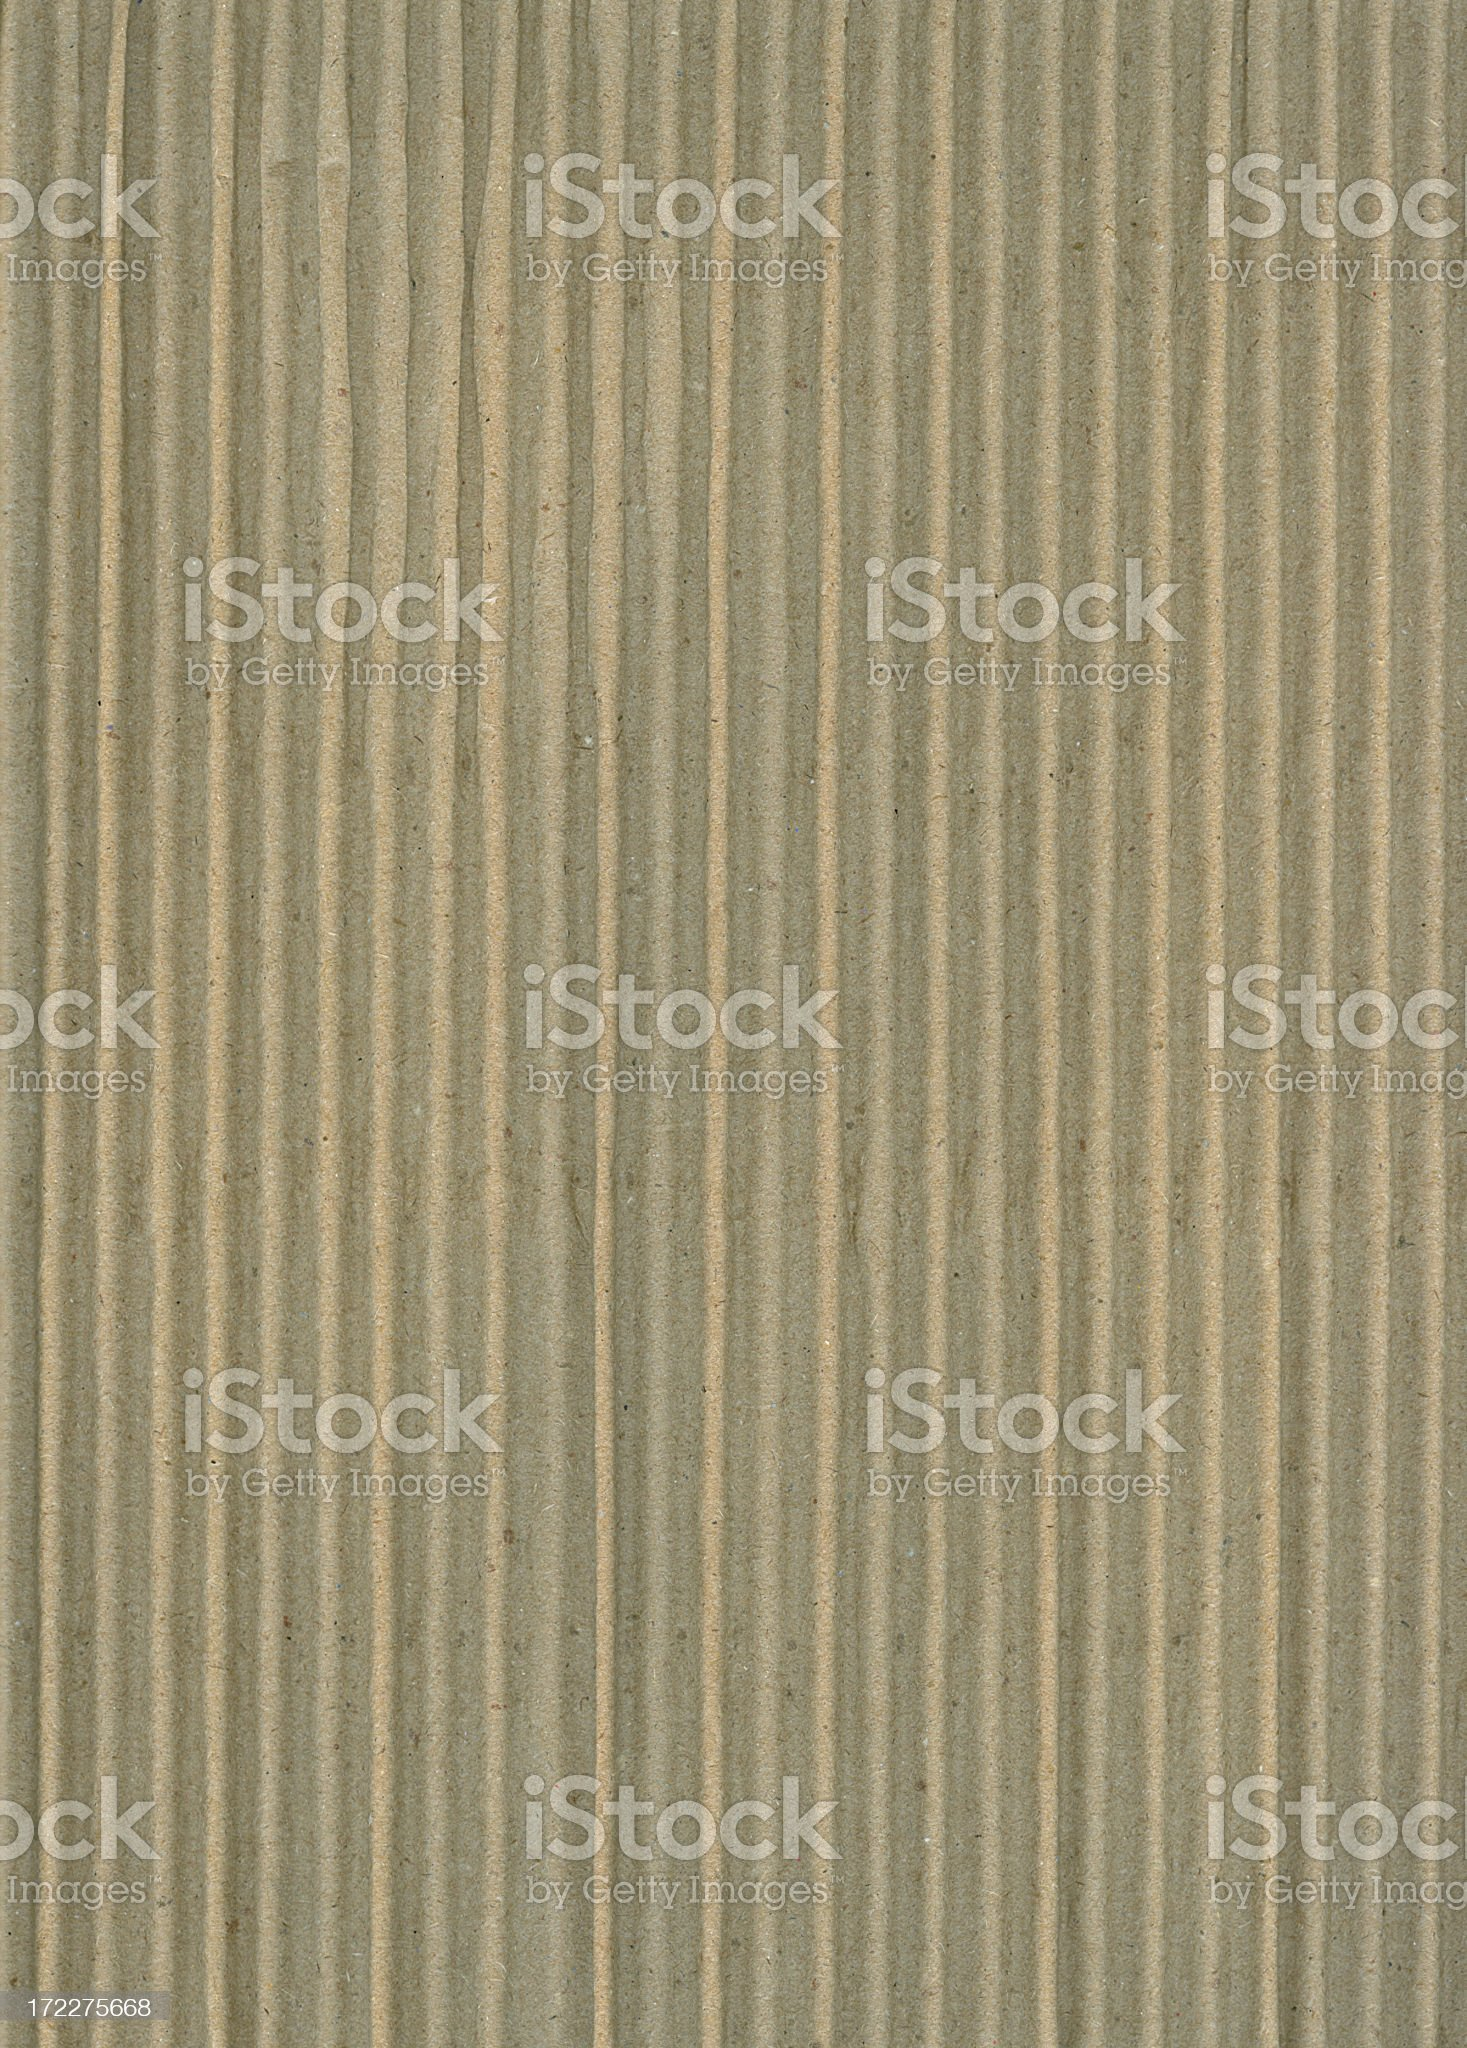 Recycling corrugated cardboard royalty-free stock photo